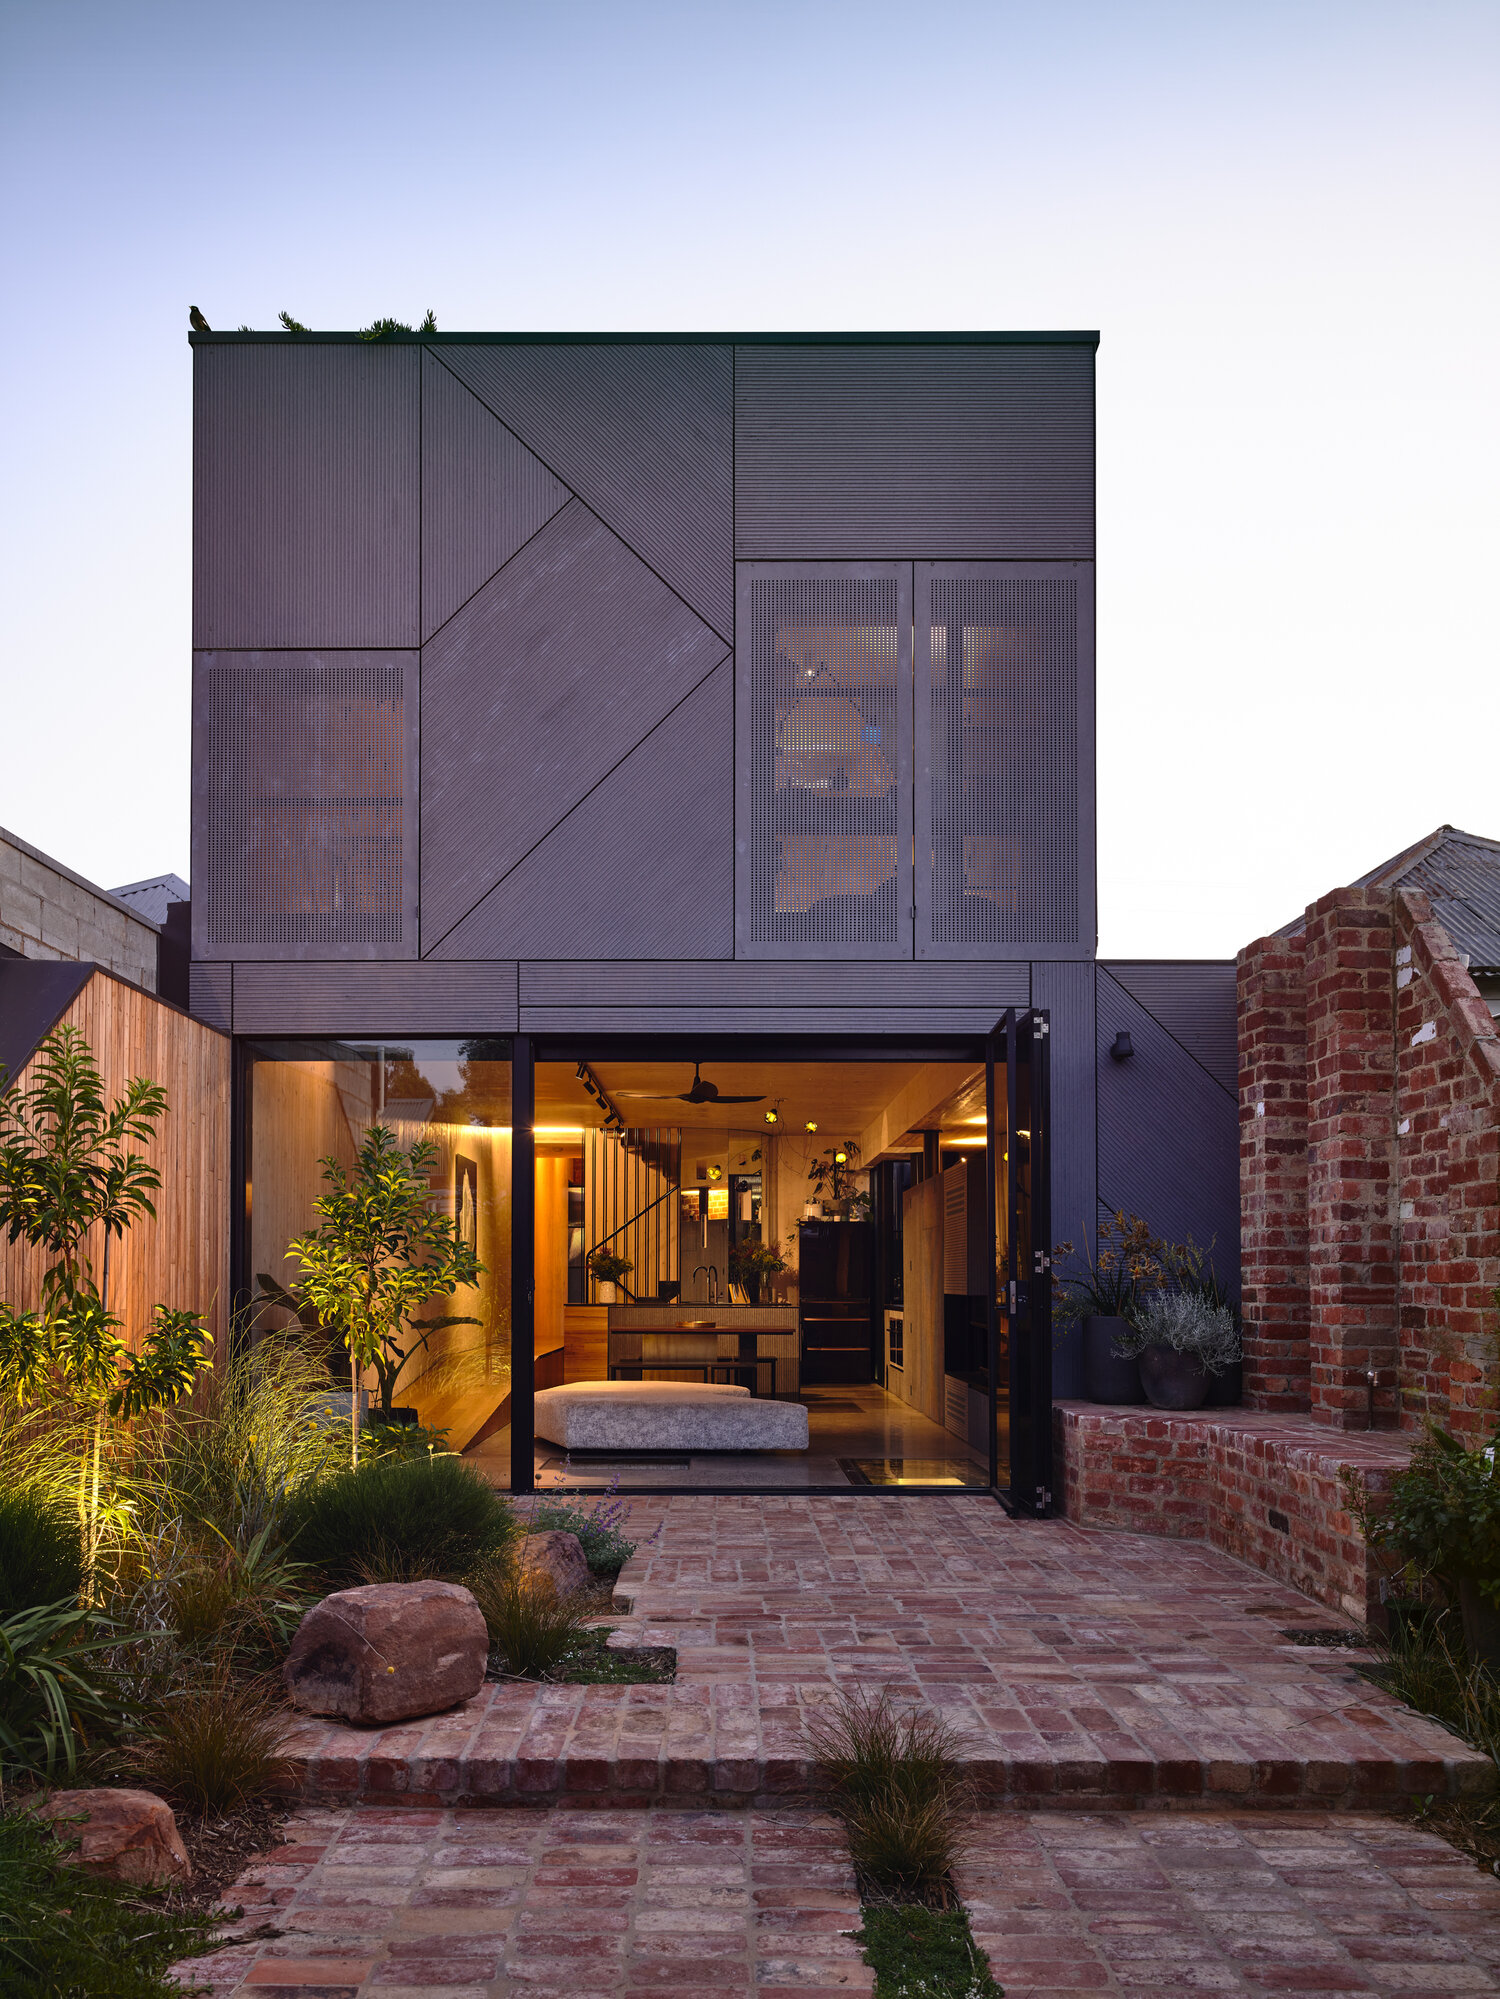 Austin Maynard Architects